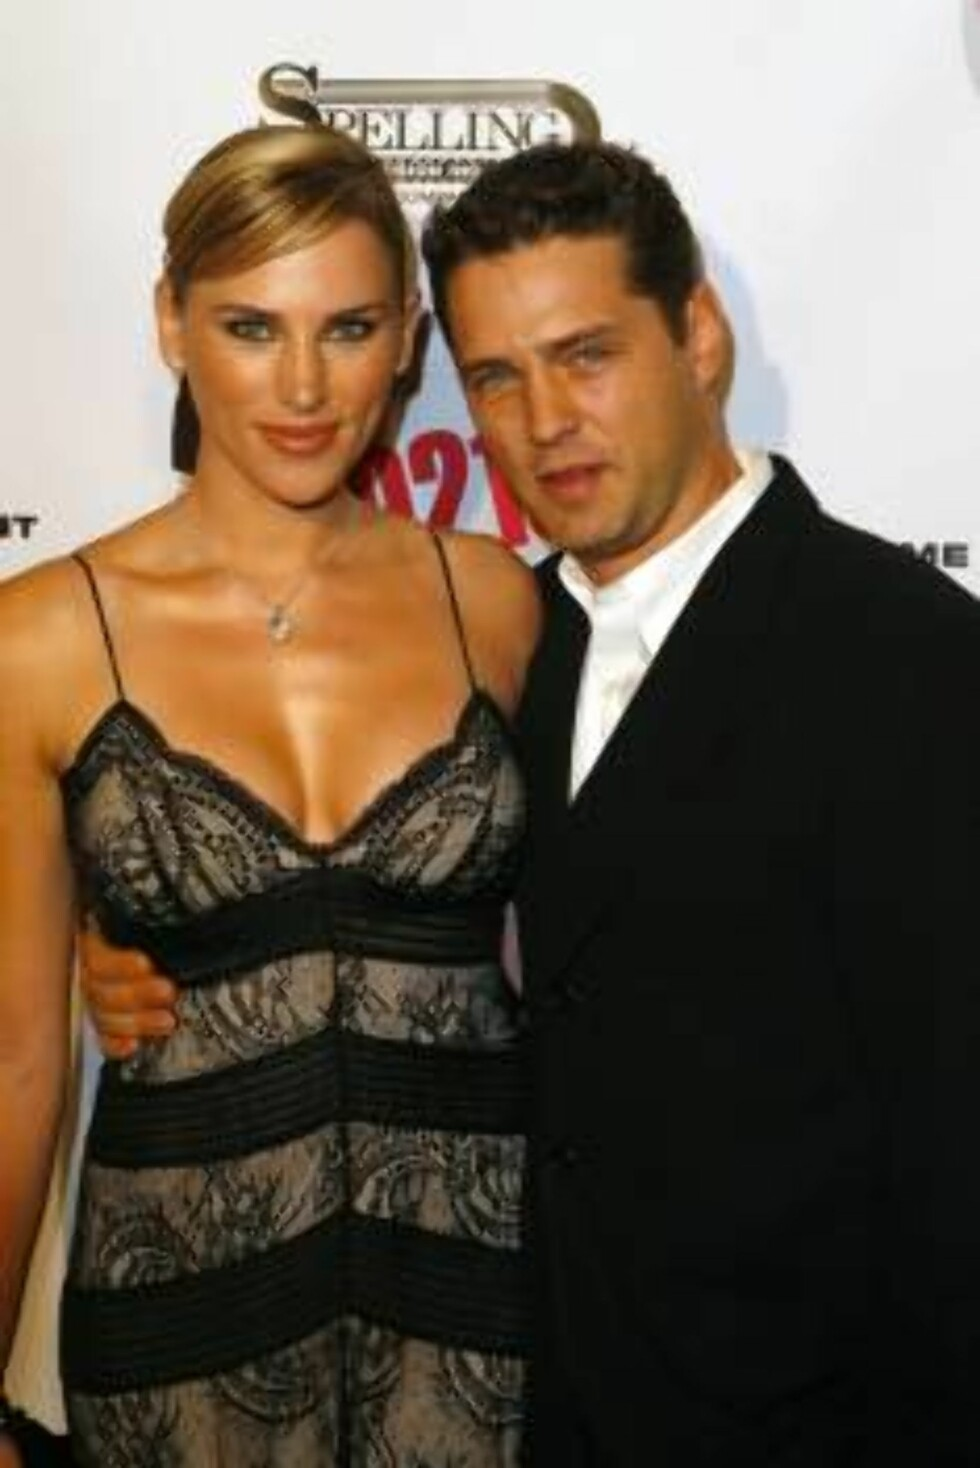 BEVERLY HILLS 2006-11-03  Naomi Lowde Priestley and Jason Priestley at the Beverly Hill's 90210 and Melrose Place DVD Launch Party held at Beverly Hilton Hotel.  Photo: Brian Lowe/jpistudios  Code: 4036  COPYRIGHT STELLA PICTURES Foto: STELLA PICTURES